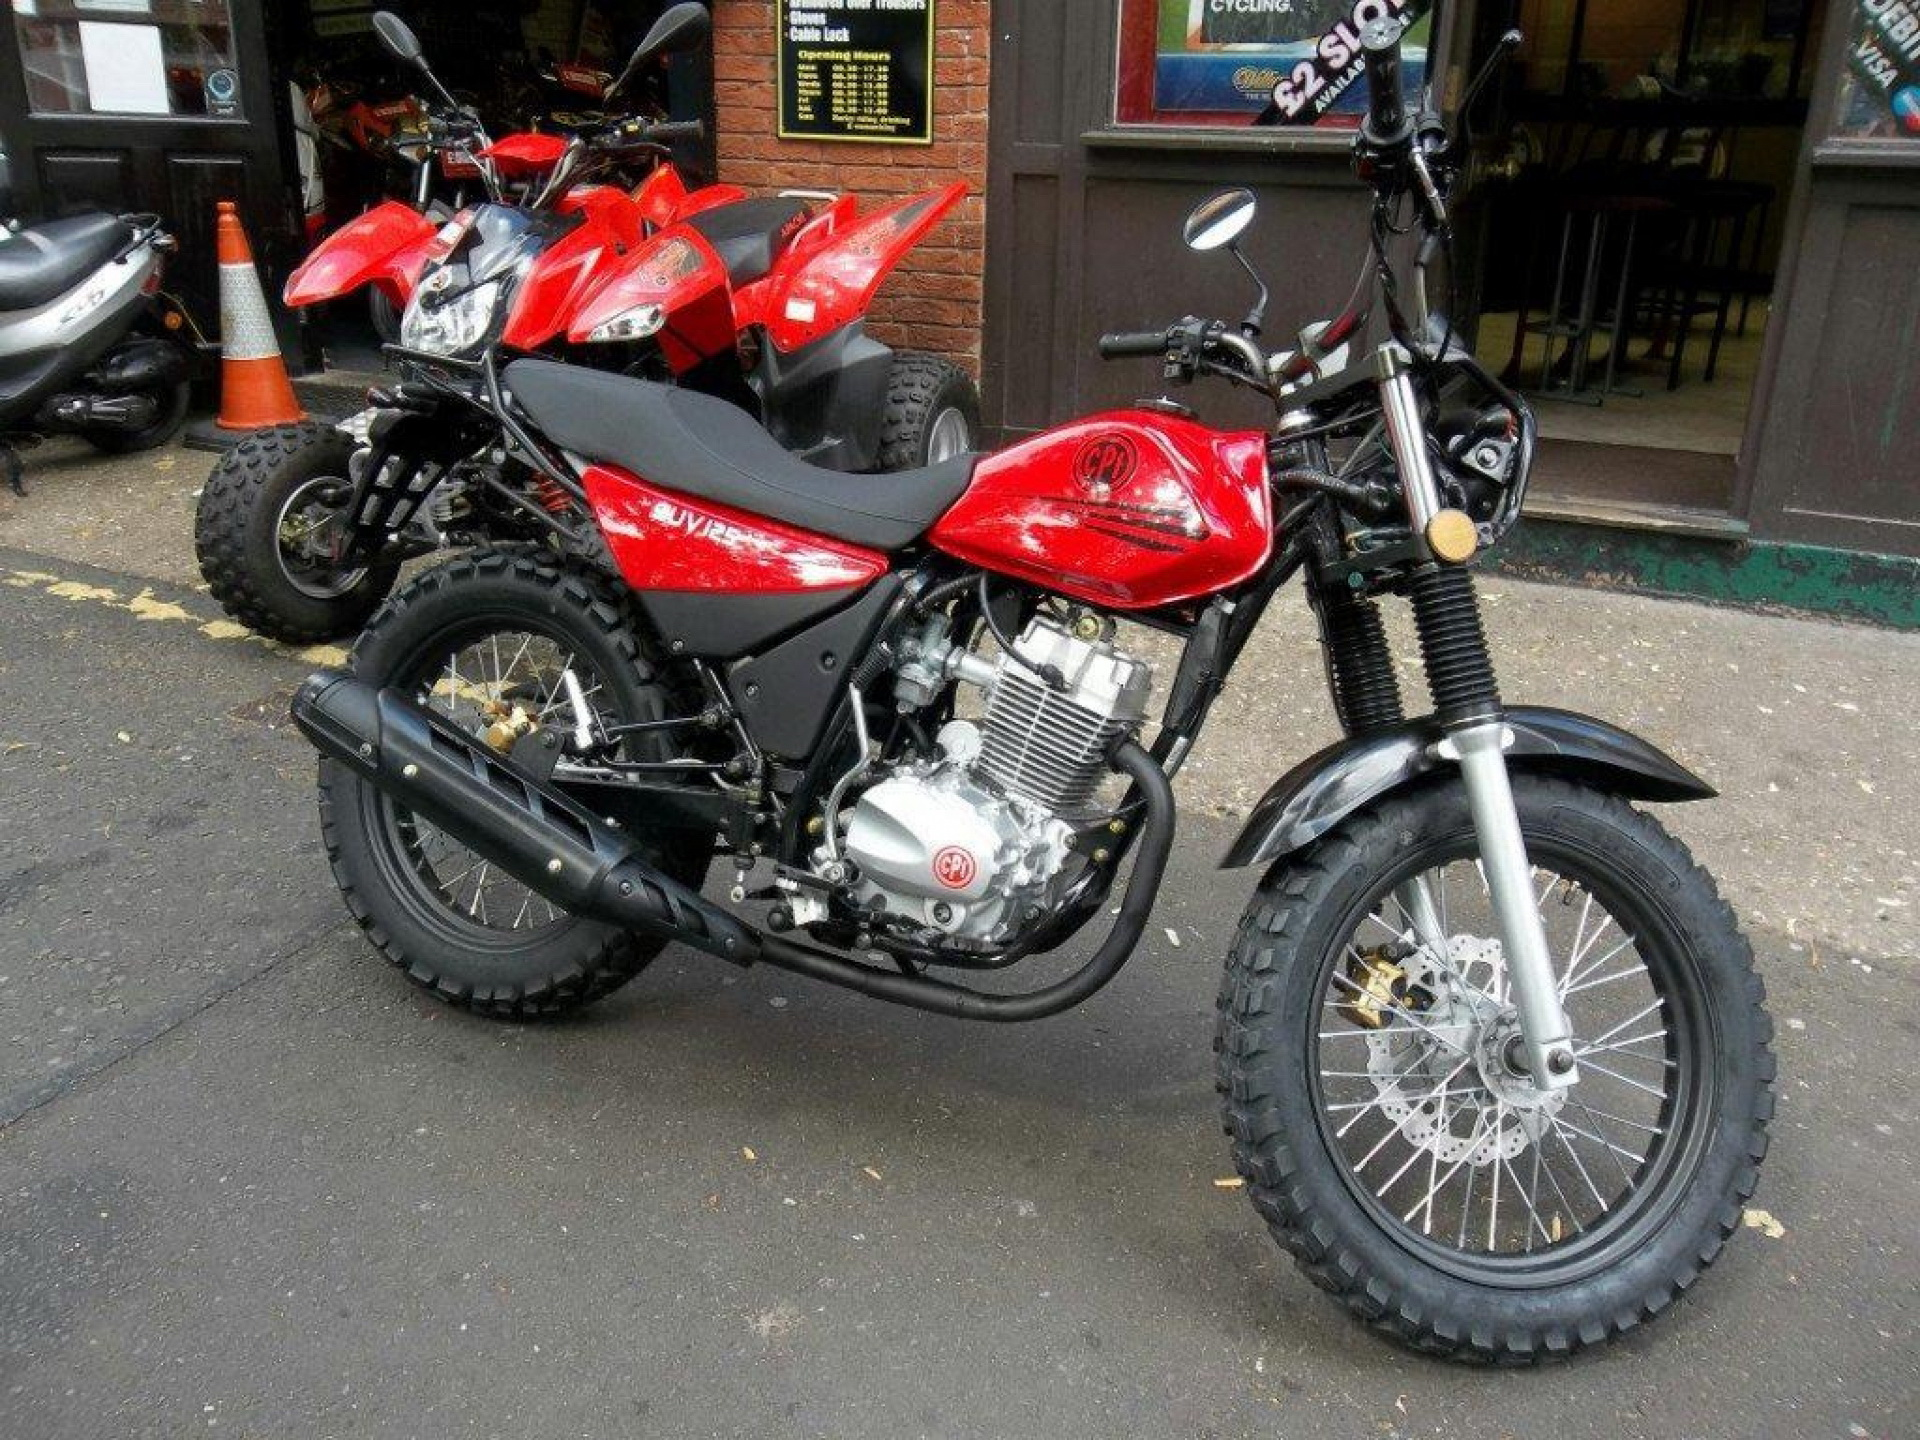 30308-used-cpi-motorcycles-for-sale.jpg